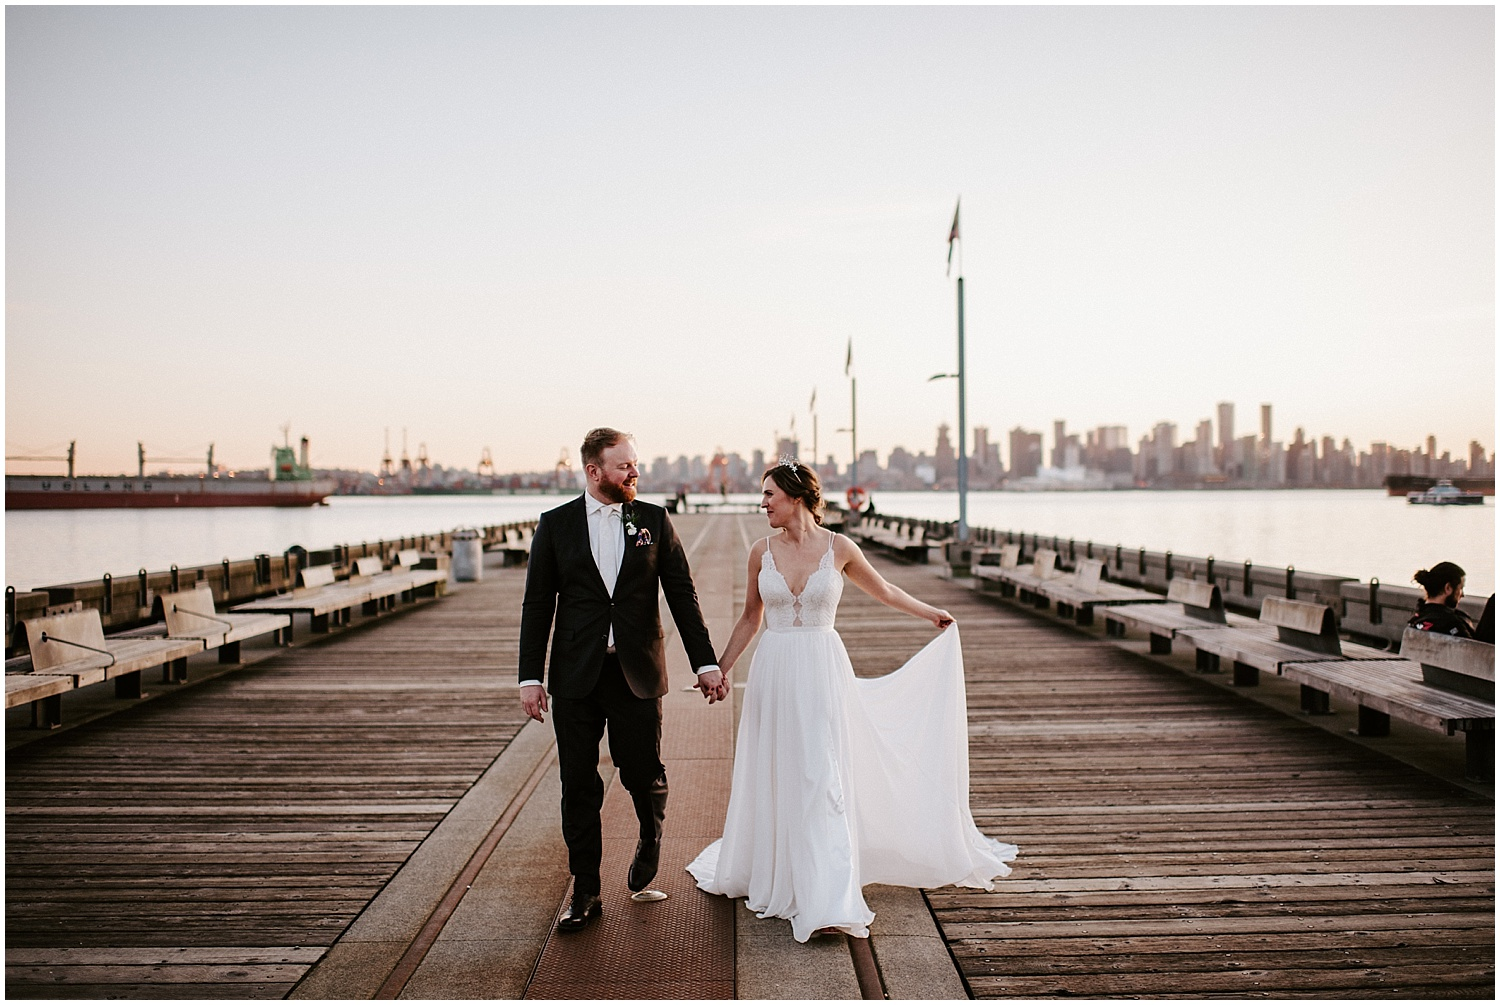 north vancouver wedding portraits intimate wedding party vancouver elopement by stacie carr photography pier lonsdale quay photos pipe shop venue